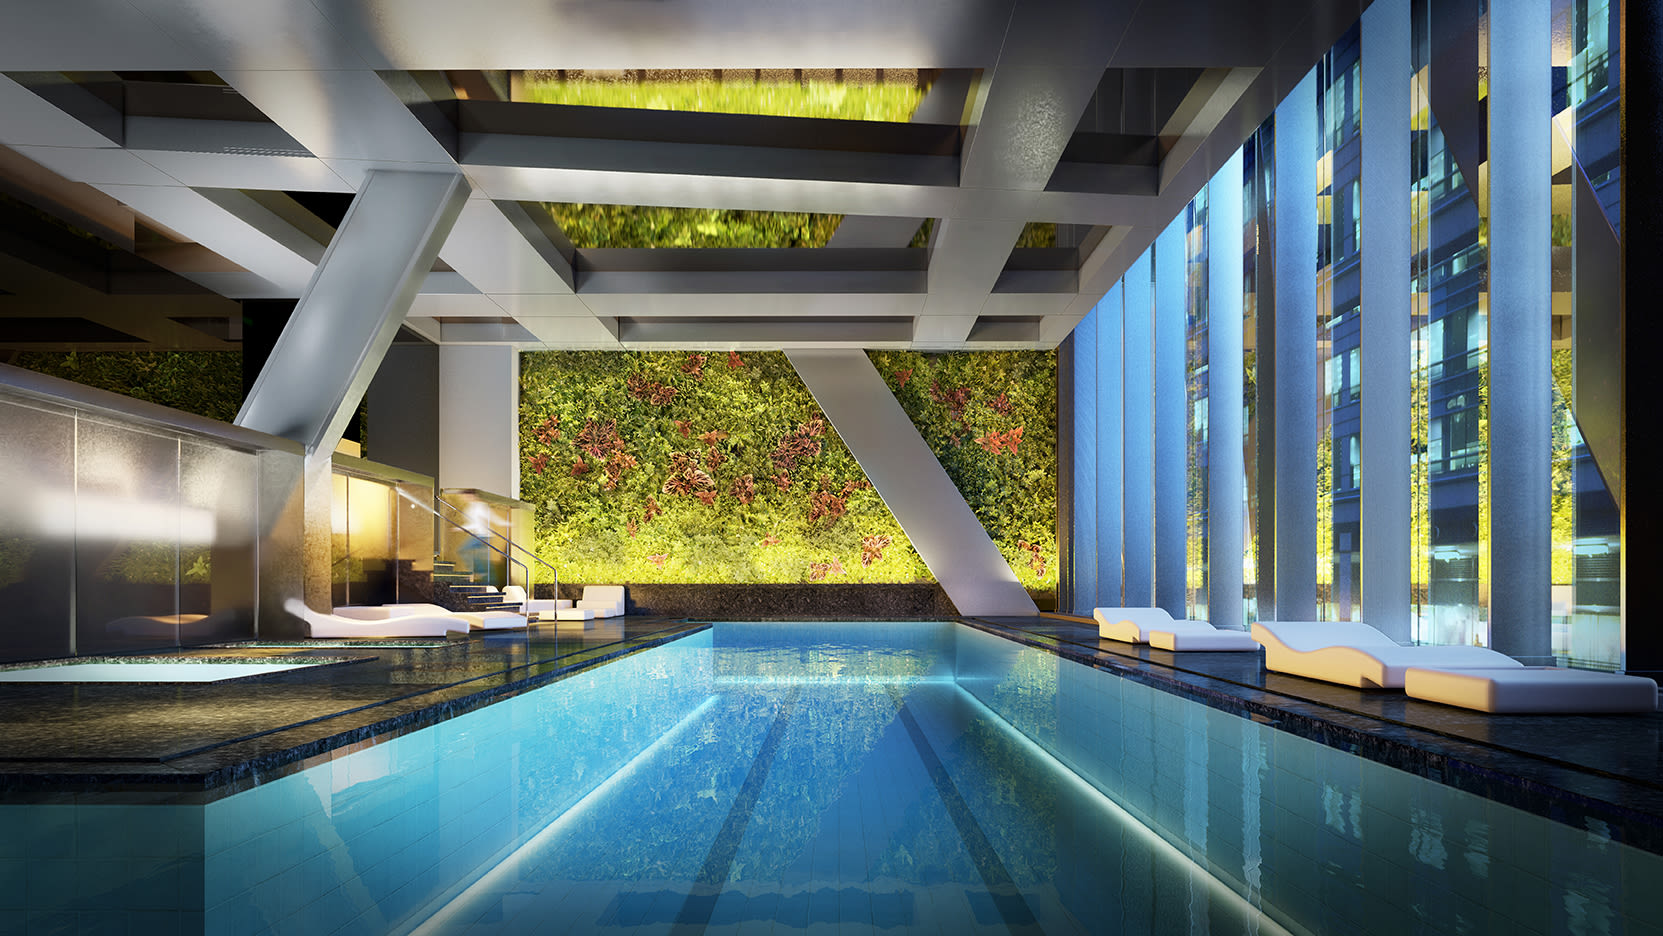 The luxury Midtown Manhattan condos have extensive in-house amenities